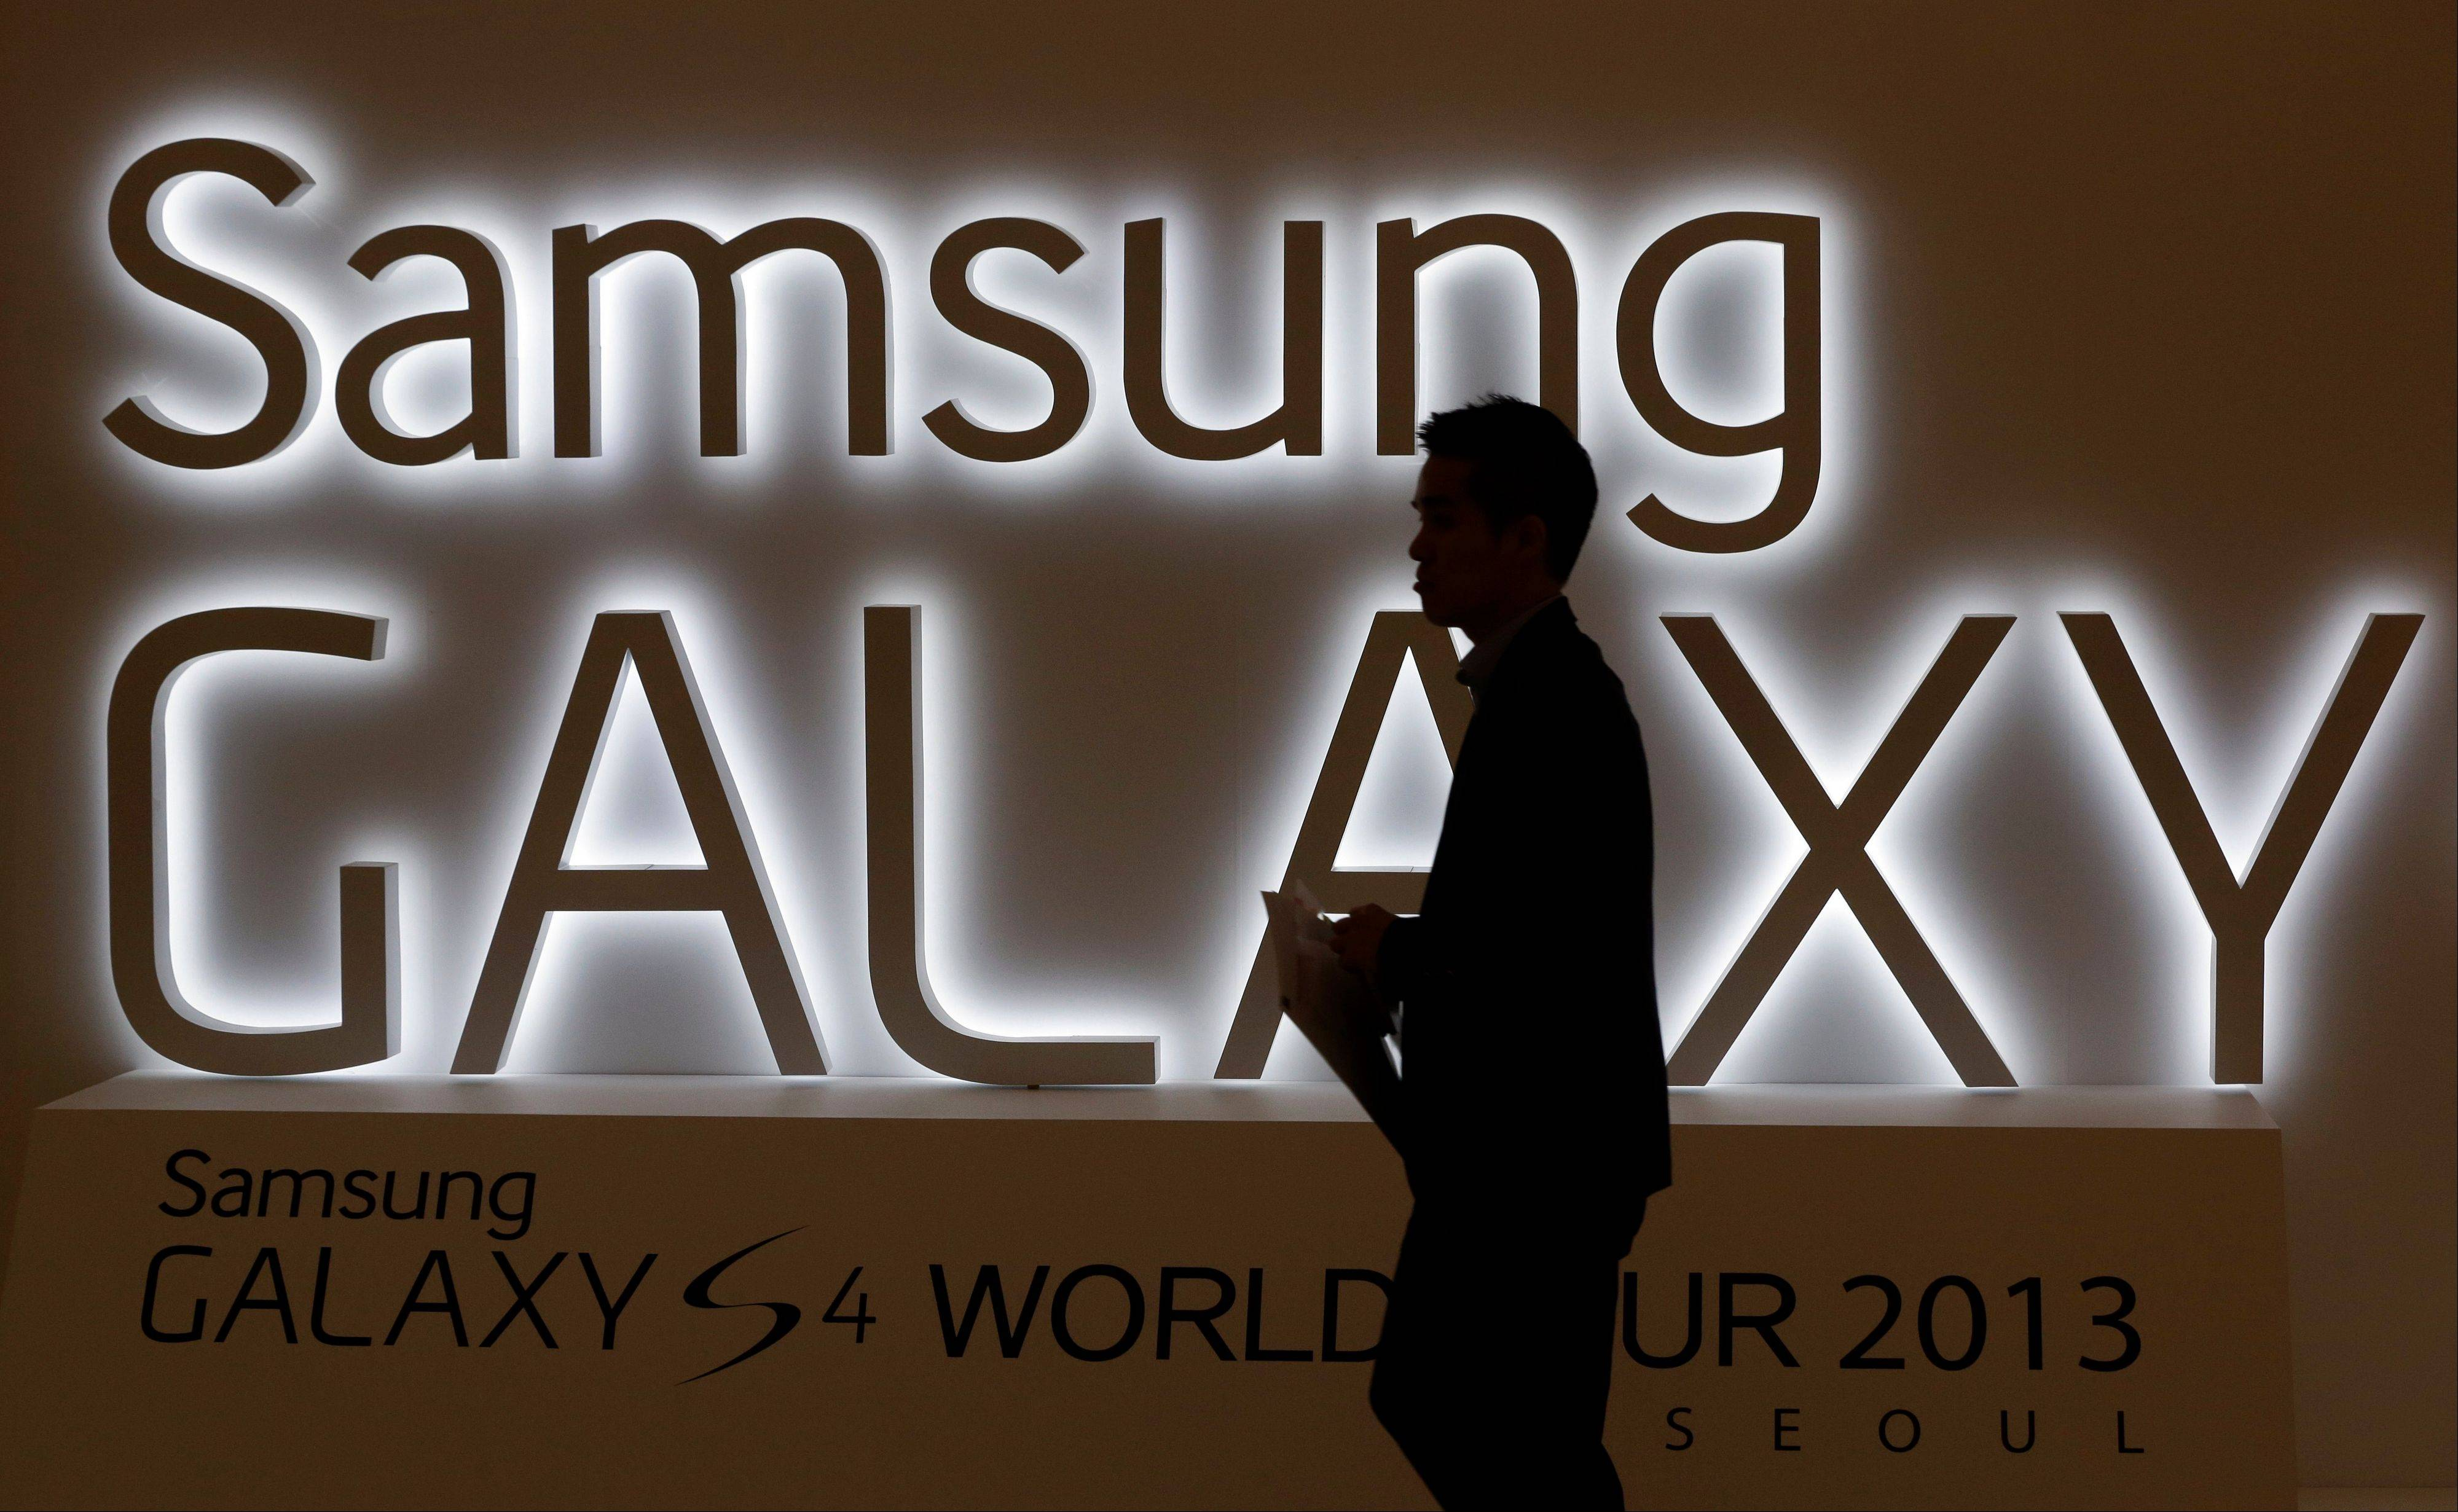 A man walks by a logo of Samsung Electronics Co.�s latest smartphone Galaxy S4 during its unveiling ceremony in Seoul, South Korea. Samsung Electronics Co. has applied for U.S. and South Korean trademarks for a watch that connects to the Internet in the latest sign that consumer technology companies see wearable devices as the future of their business.